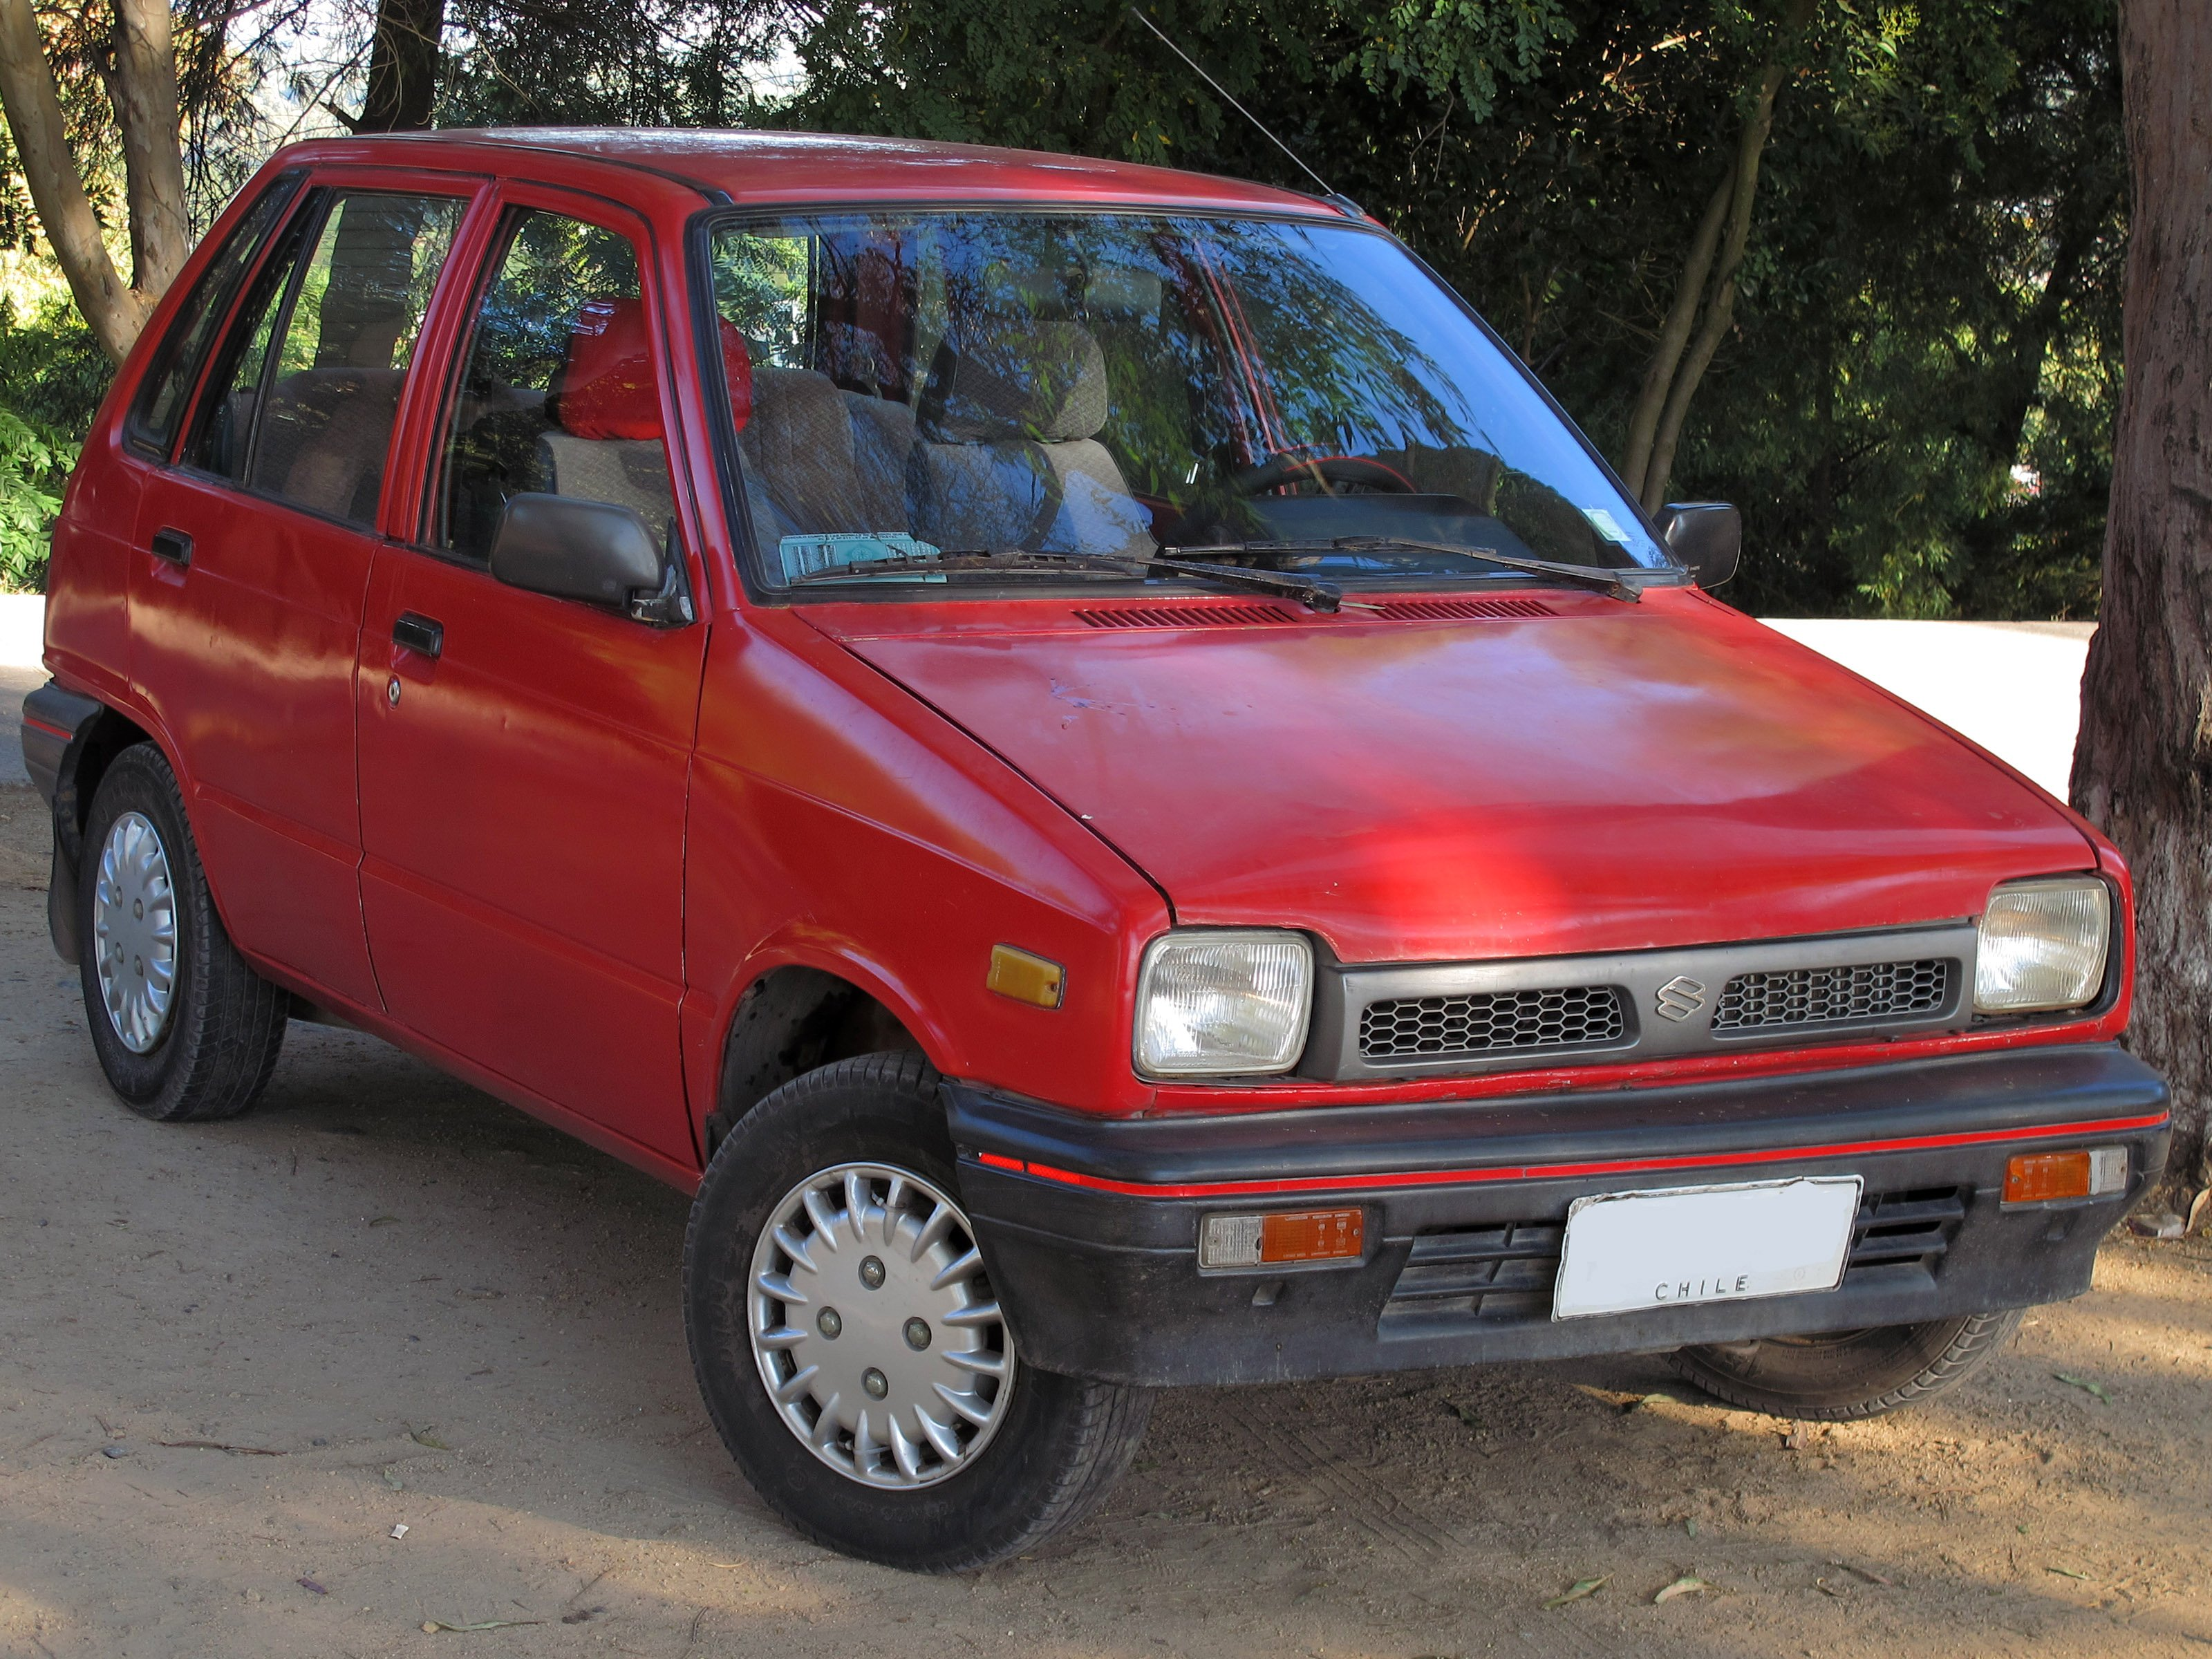 From Ambassador To Maruti 800: 10 Cars That Ruled The